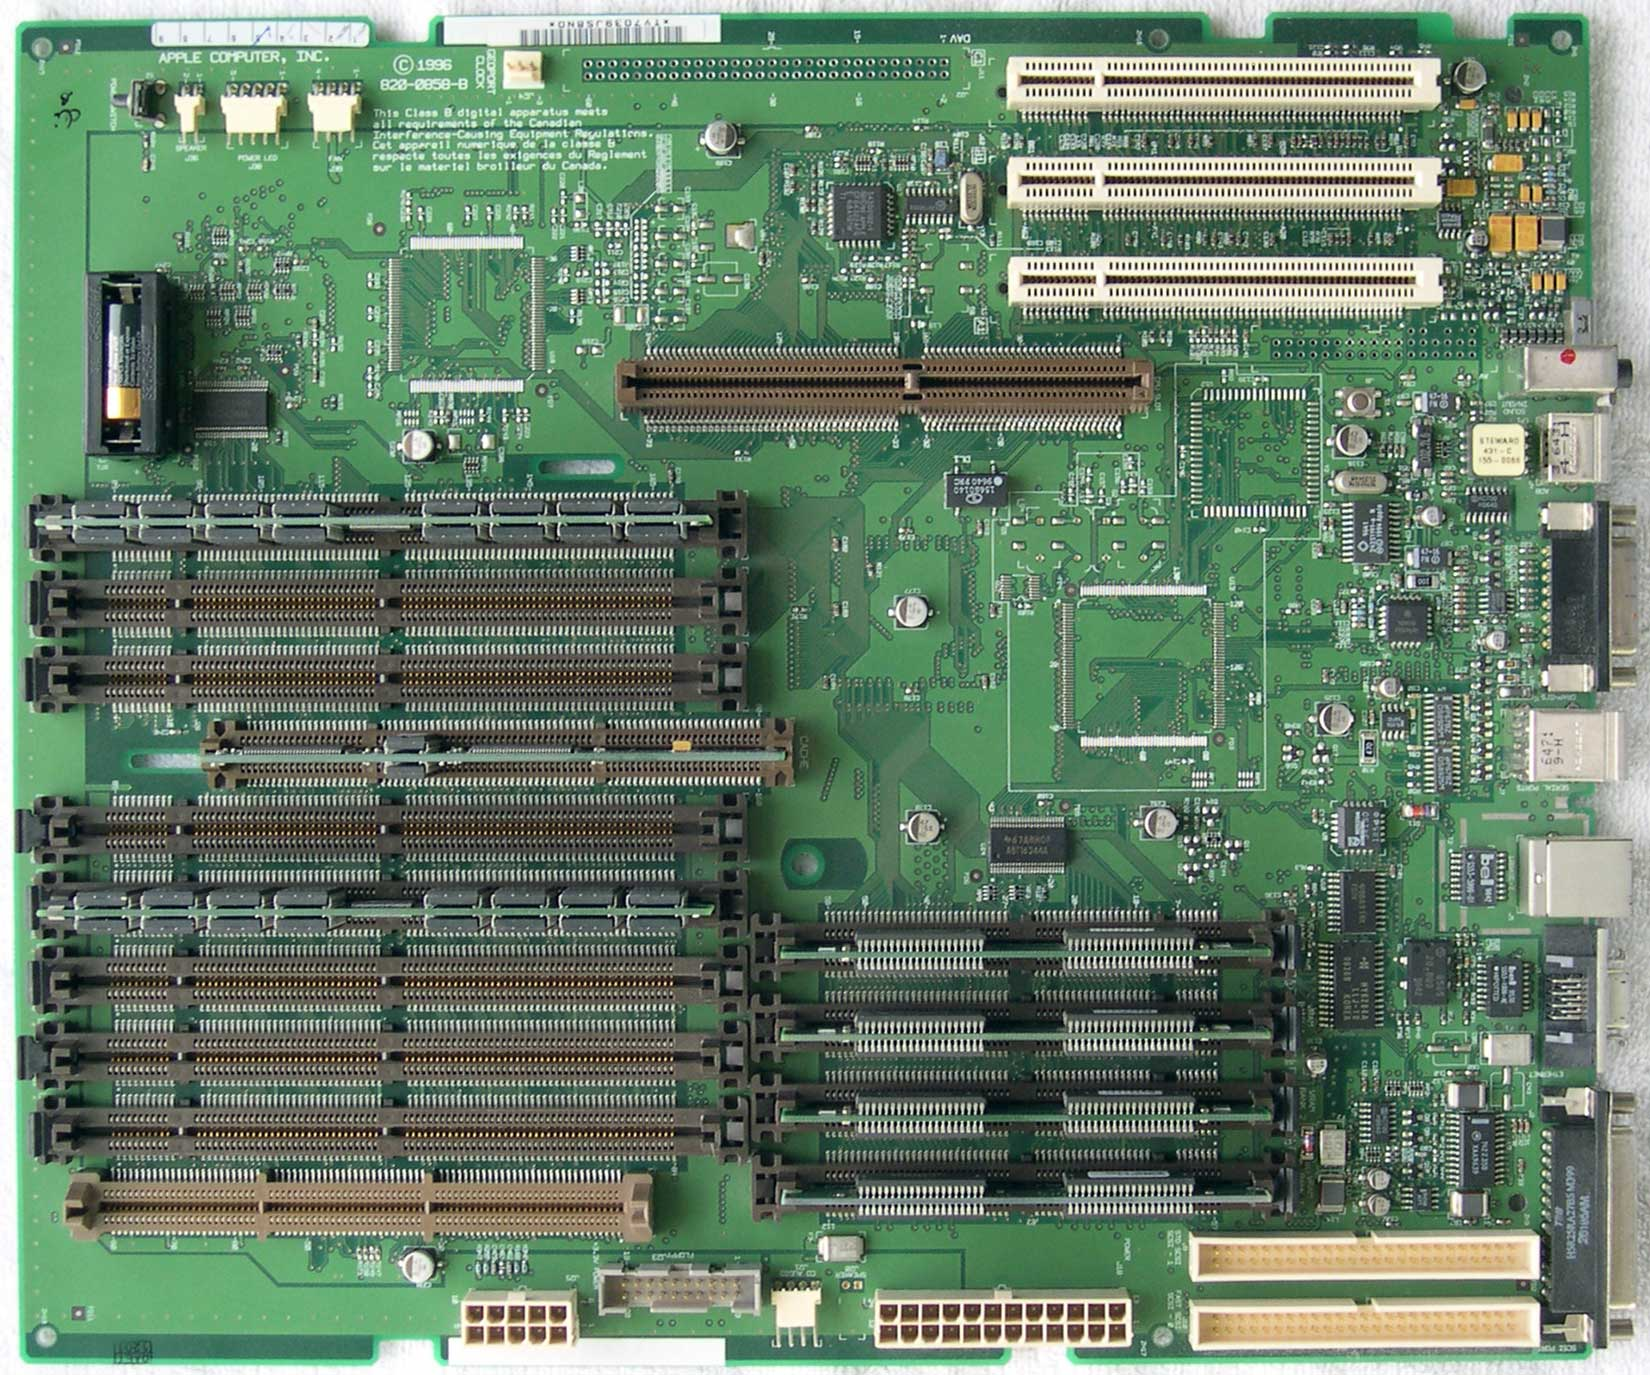 Mac motherboard diagram labeled electrical work wiring diagram illustrated 7500 teardown rh mathdittos2 com basic motherboard labeled basic motherboard labeled ccuart Image collections